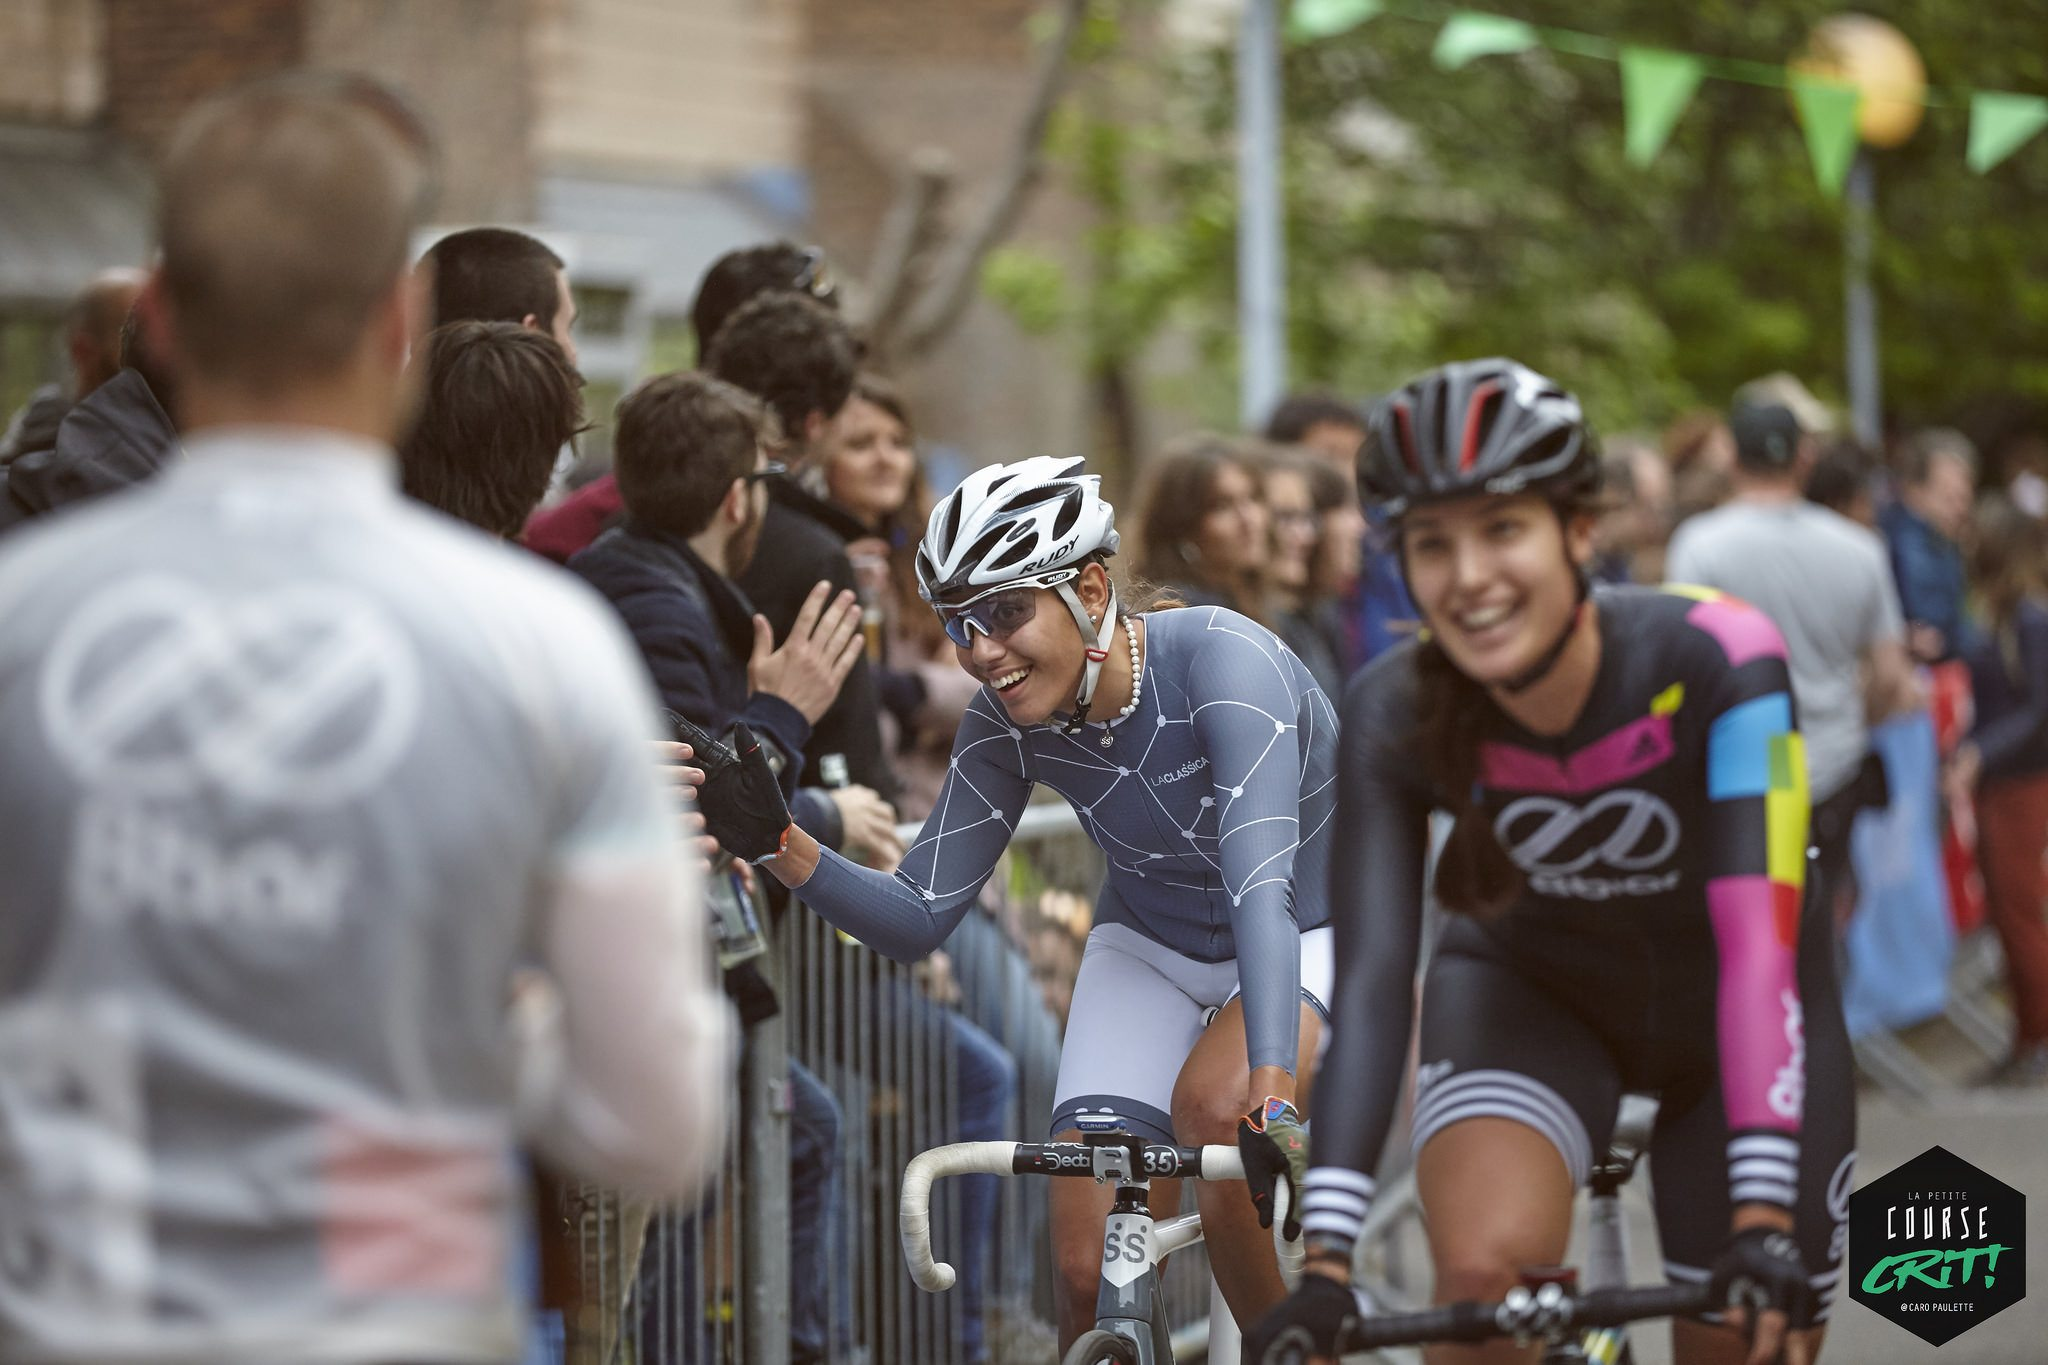 La Petite Course 2017: serious racing and good times